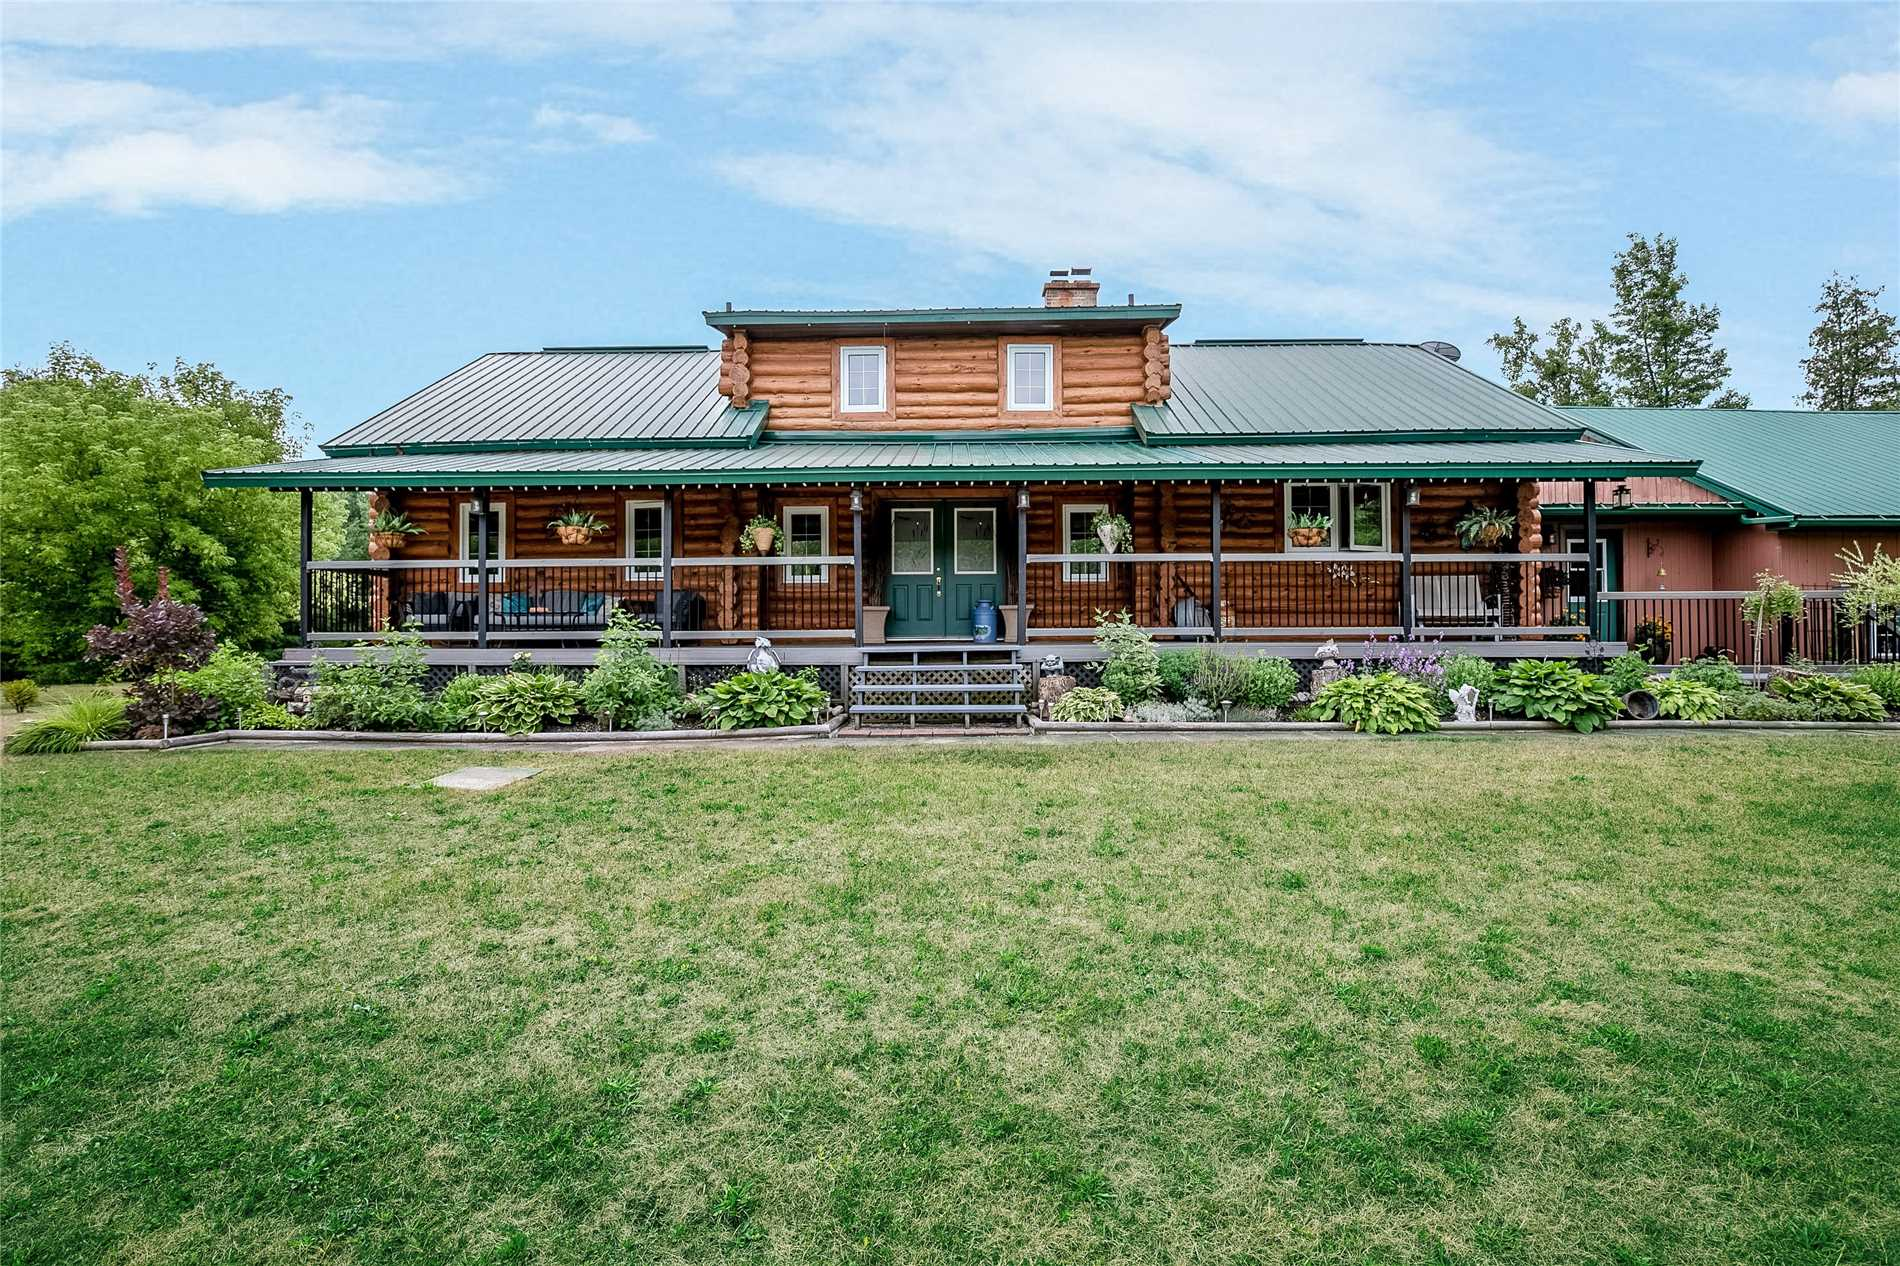 Discover The Timeless Style And Beauty Of This Custom Built Log Home With Steel Roof Located On 2.4 Acres Of Parklike Grounds. 3000 Sq Ft Of Spacious Open Concept Living, 4 Bedrooms, 4 Bathrooms, Fully Finished Basement, Soaring Cathedral Ceilings, Hardwood Throughout, Huge Eat-In Kitchen, Master Bdrm With Ensuite. Multiple Walkouts, Beautiful Covered Front Porch And Rear Deck W/Pool. Guest Log Cabin 12X16 With Electricity. The Feature List Is Endless!